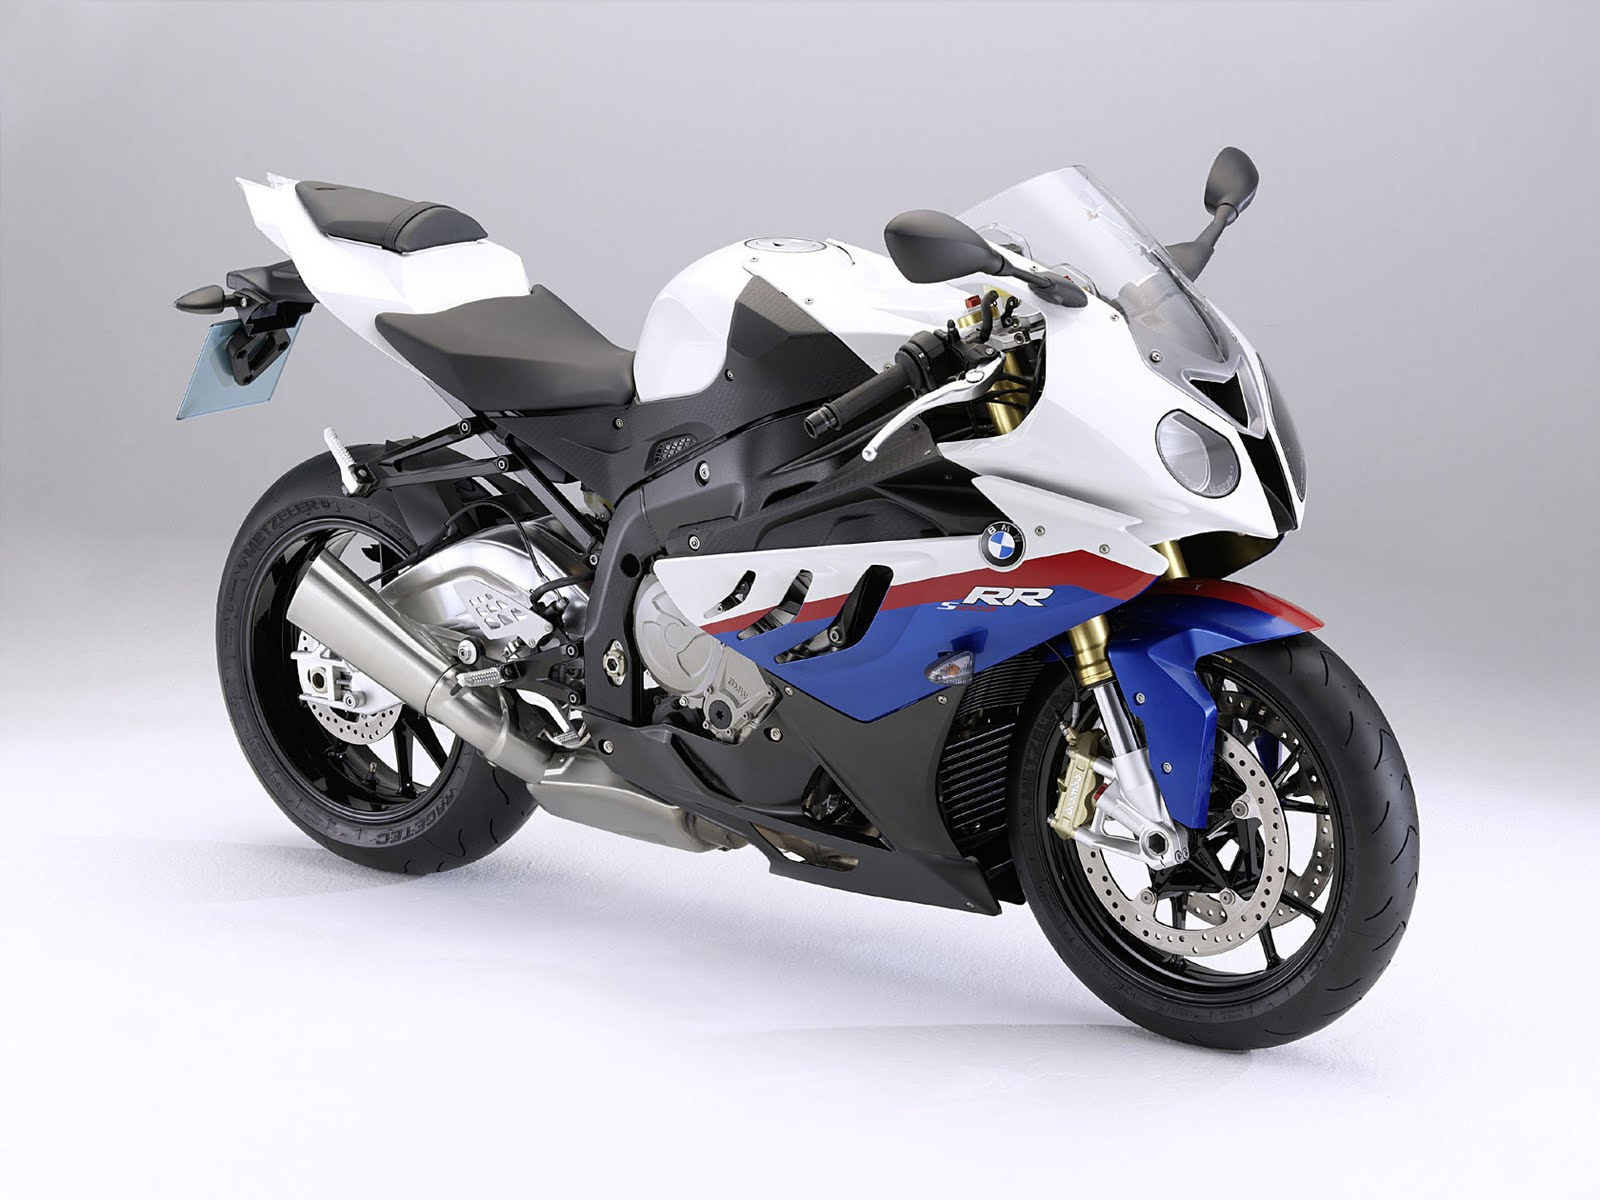 2010 bmw s1000rr motorcycle wallpapers gallery. Black Bedroom Furniture Sets. Home Design Ideas